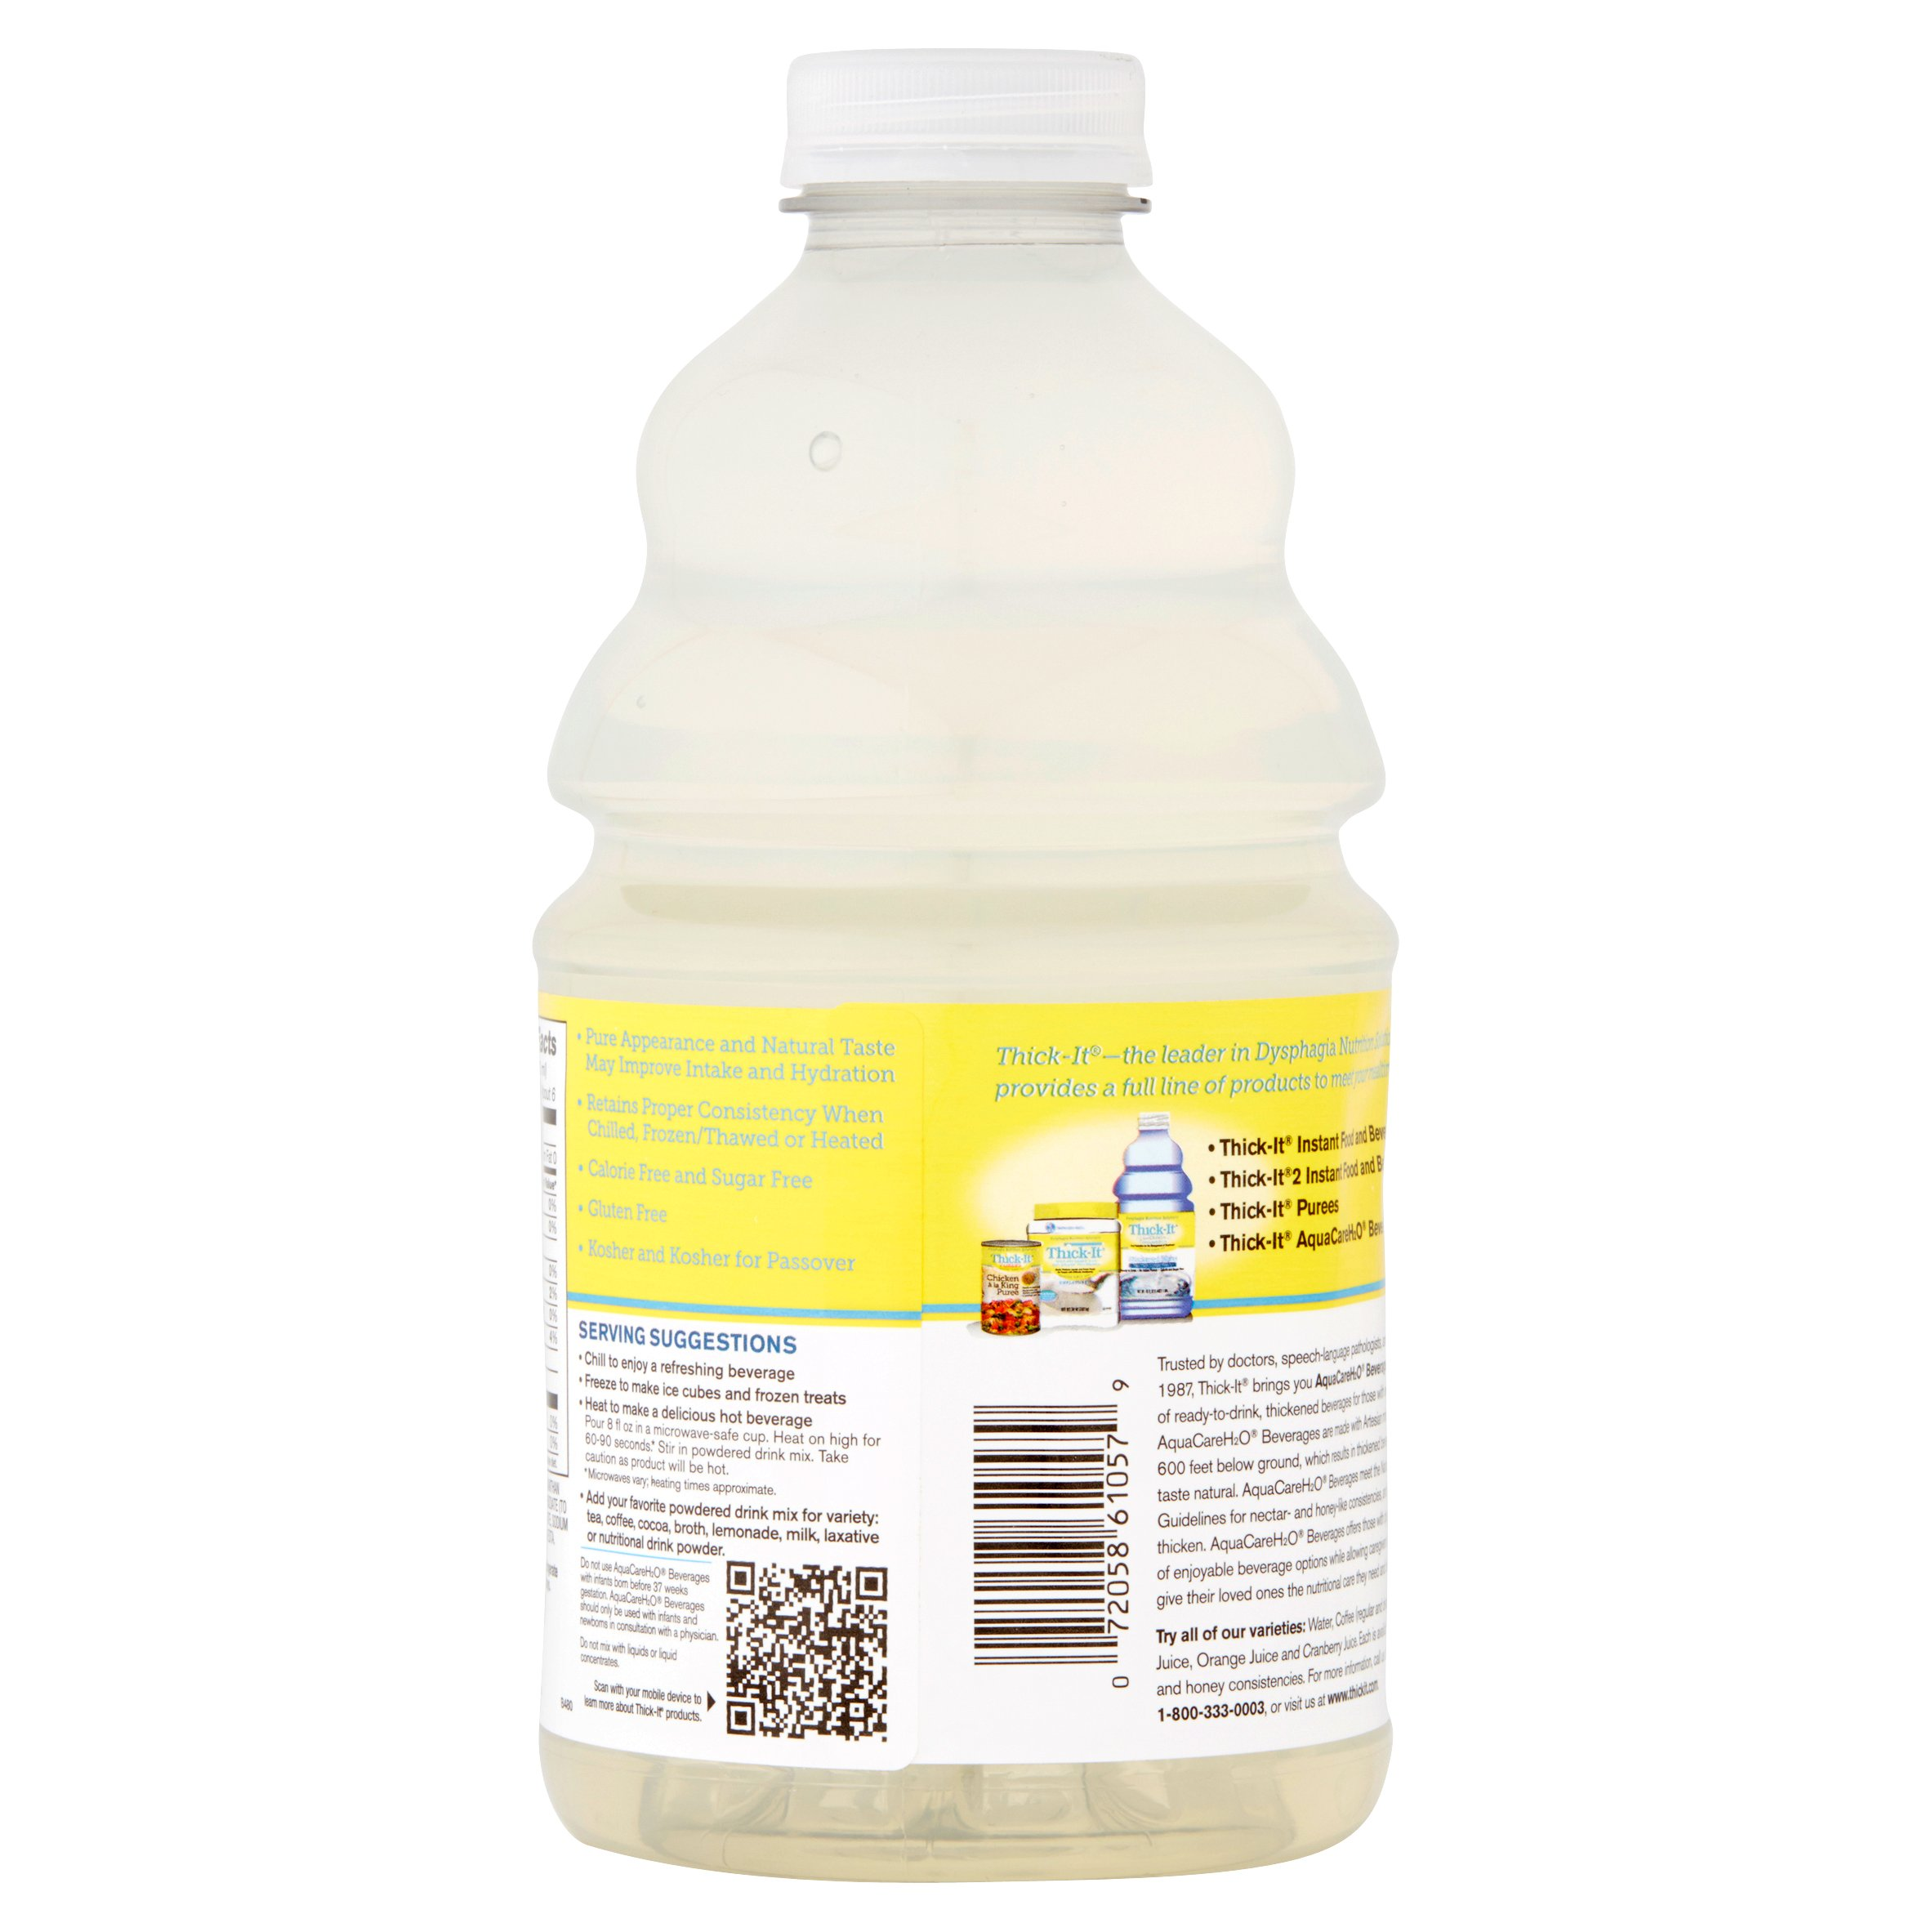 Thick-It AquaCareH₂O Beverages Thickened Water, 46 fl oz